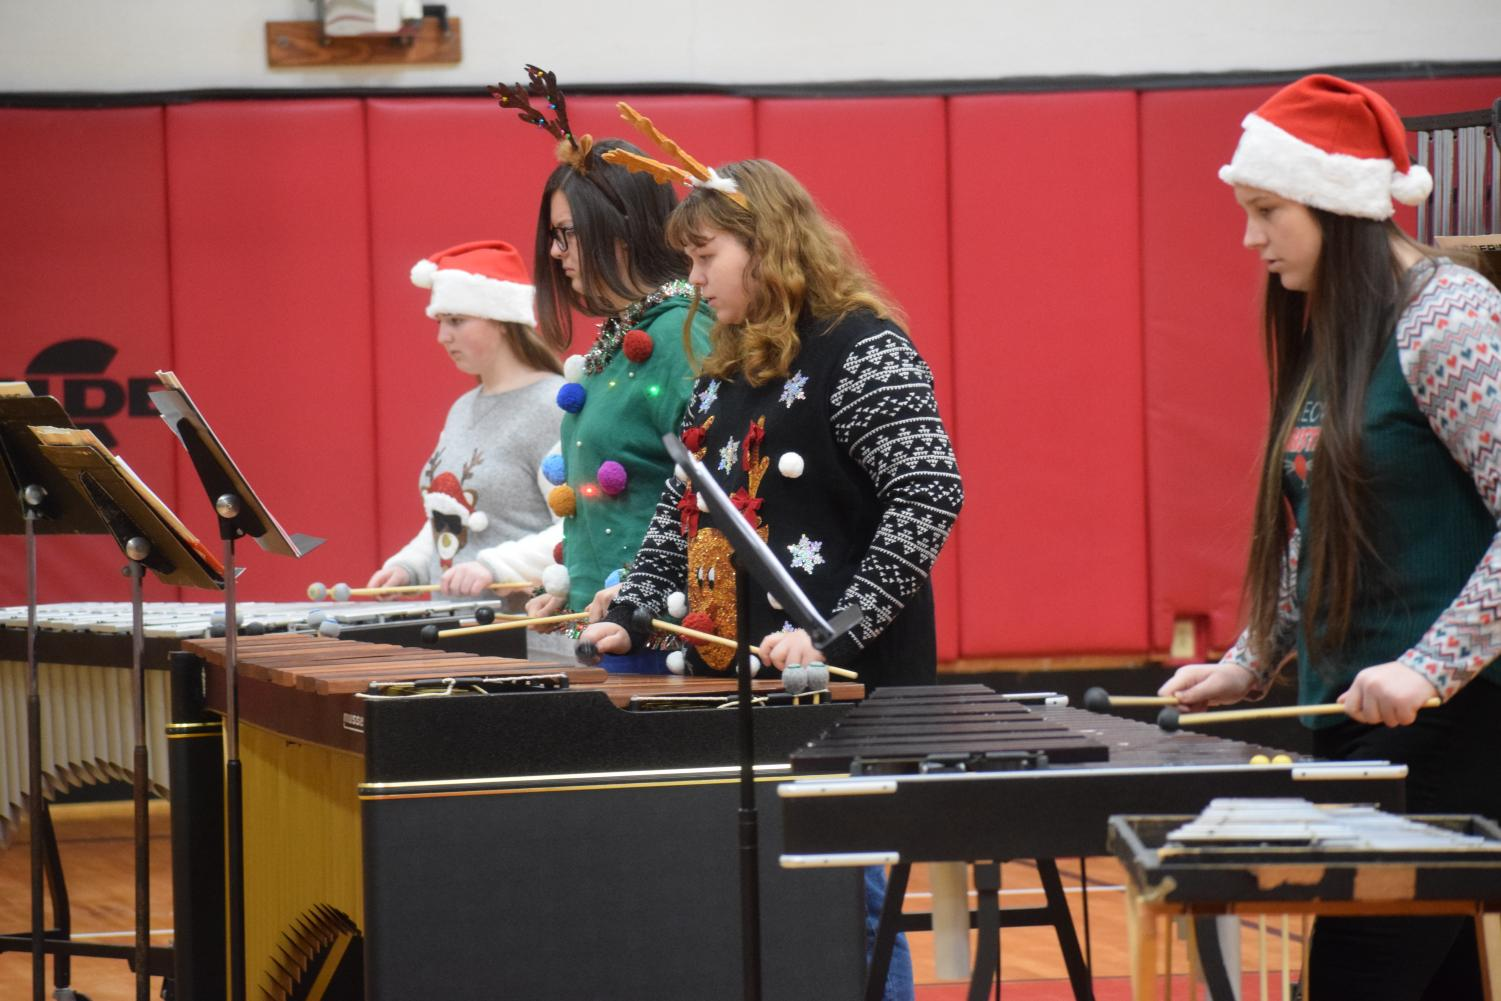 Victoria Oswald and musicians play for students at JSC. The ensemble members put on festive clothing and played Christmas music for third and fourth grade students. Junior Wesley Evans said,